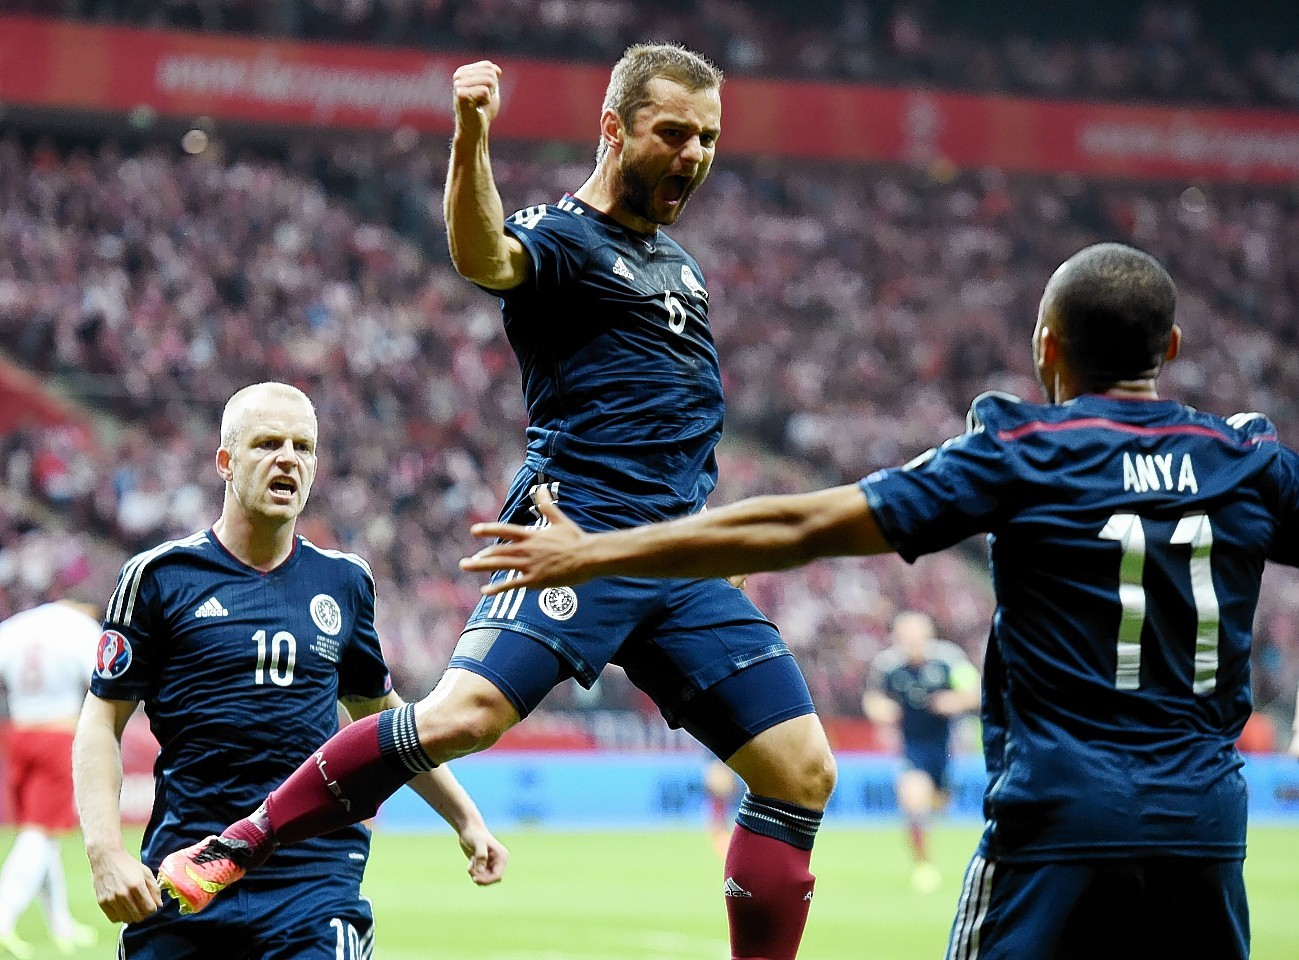 Shaun Maloney has been one of Scotland's most important players in the Euro 2016 campaign - scoring four goals already